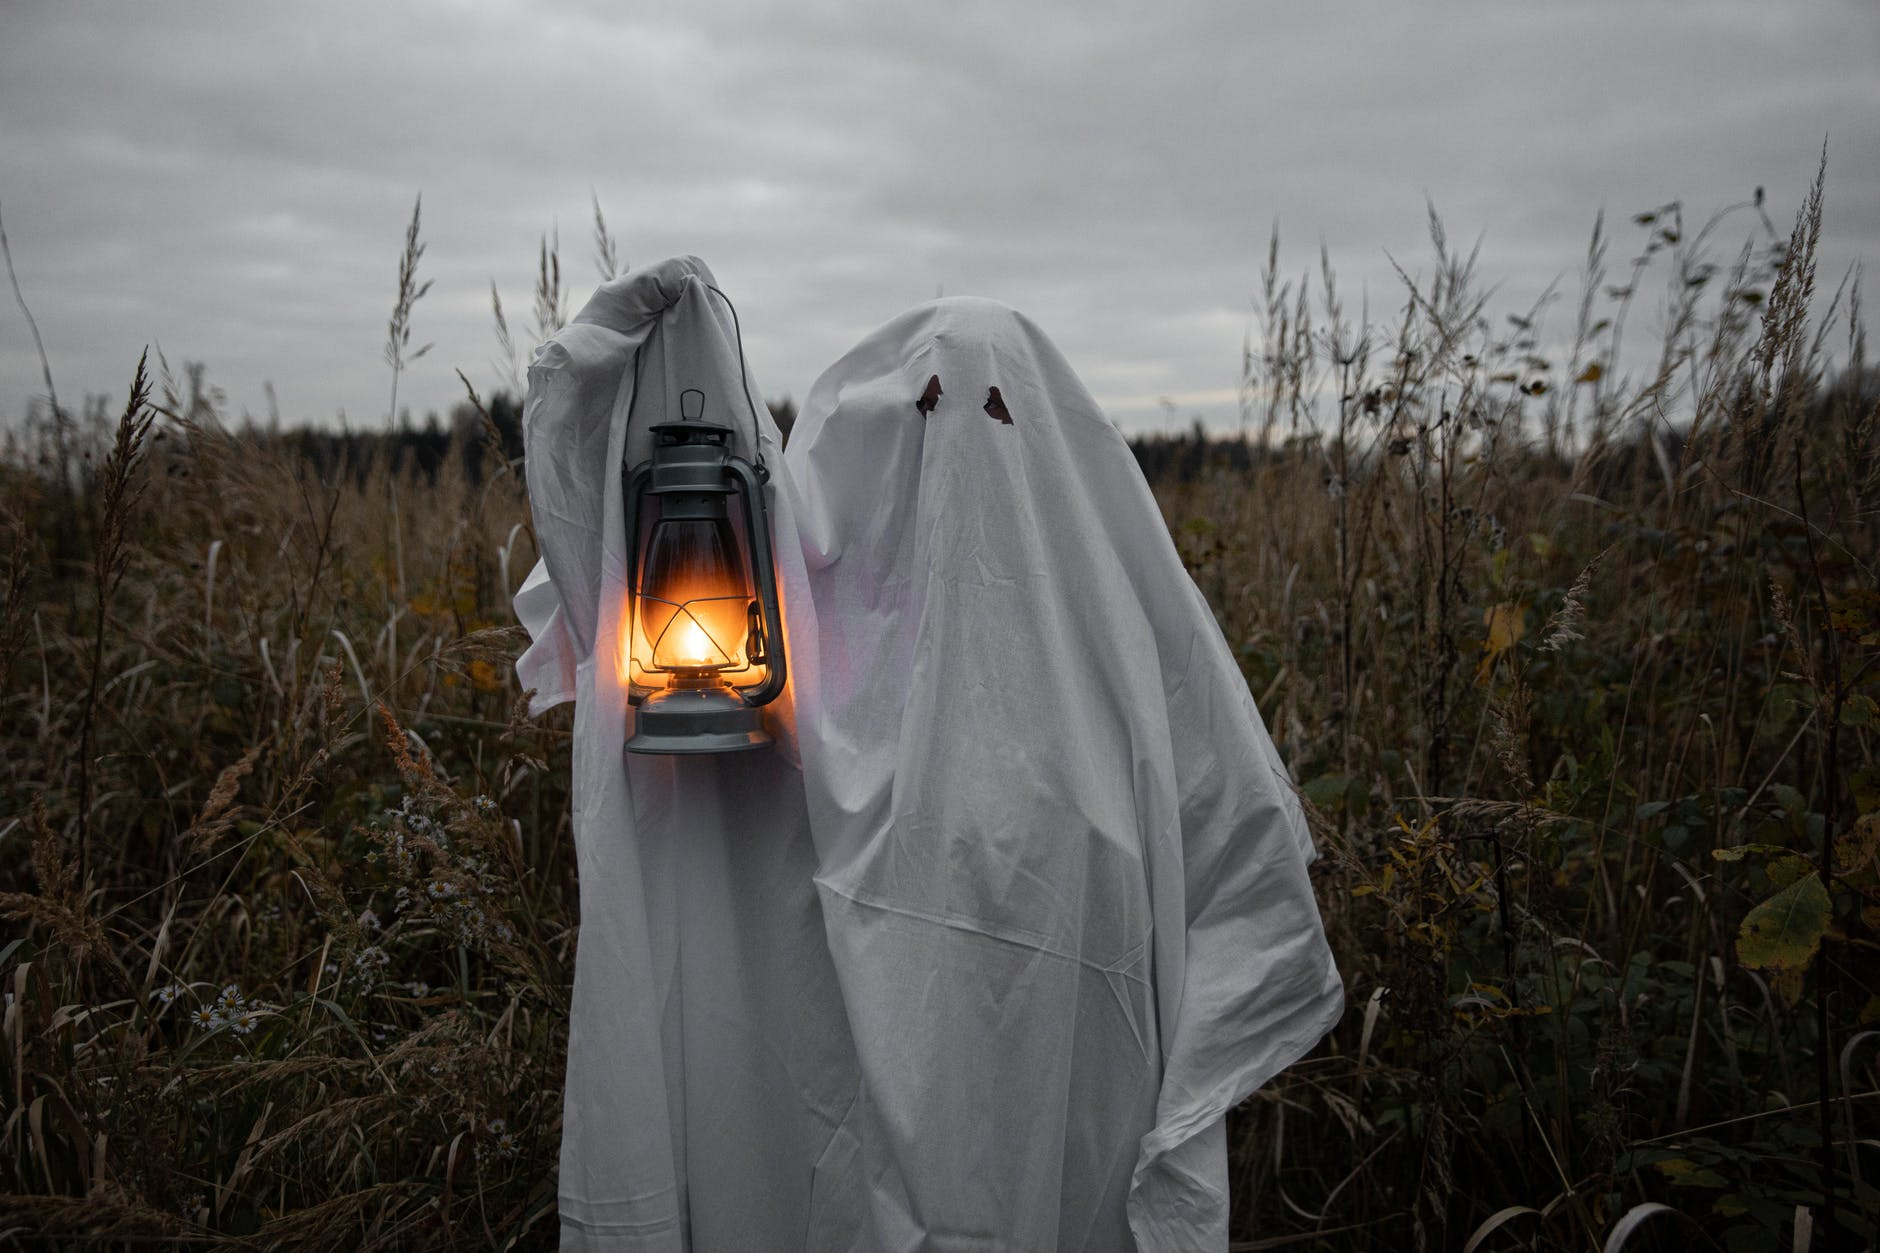 personin ghost costume holding a lantern